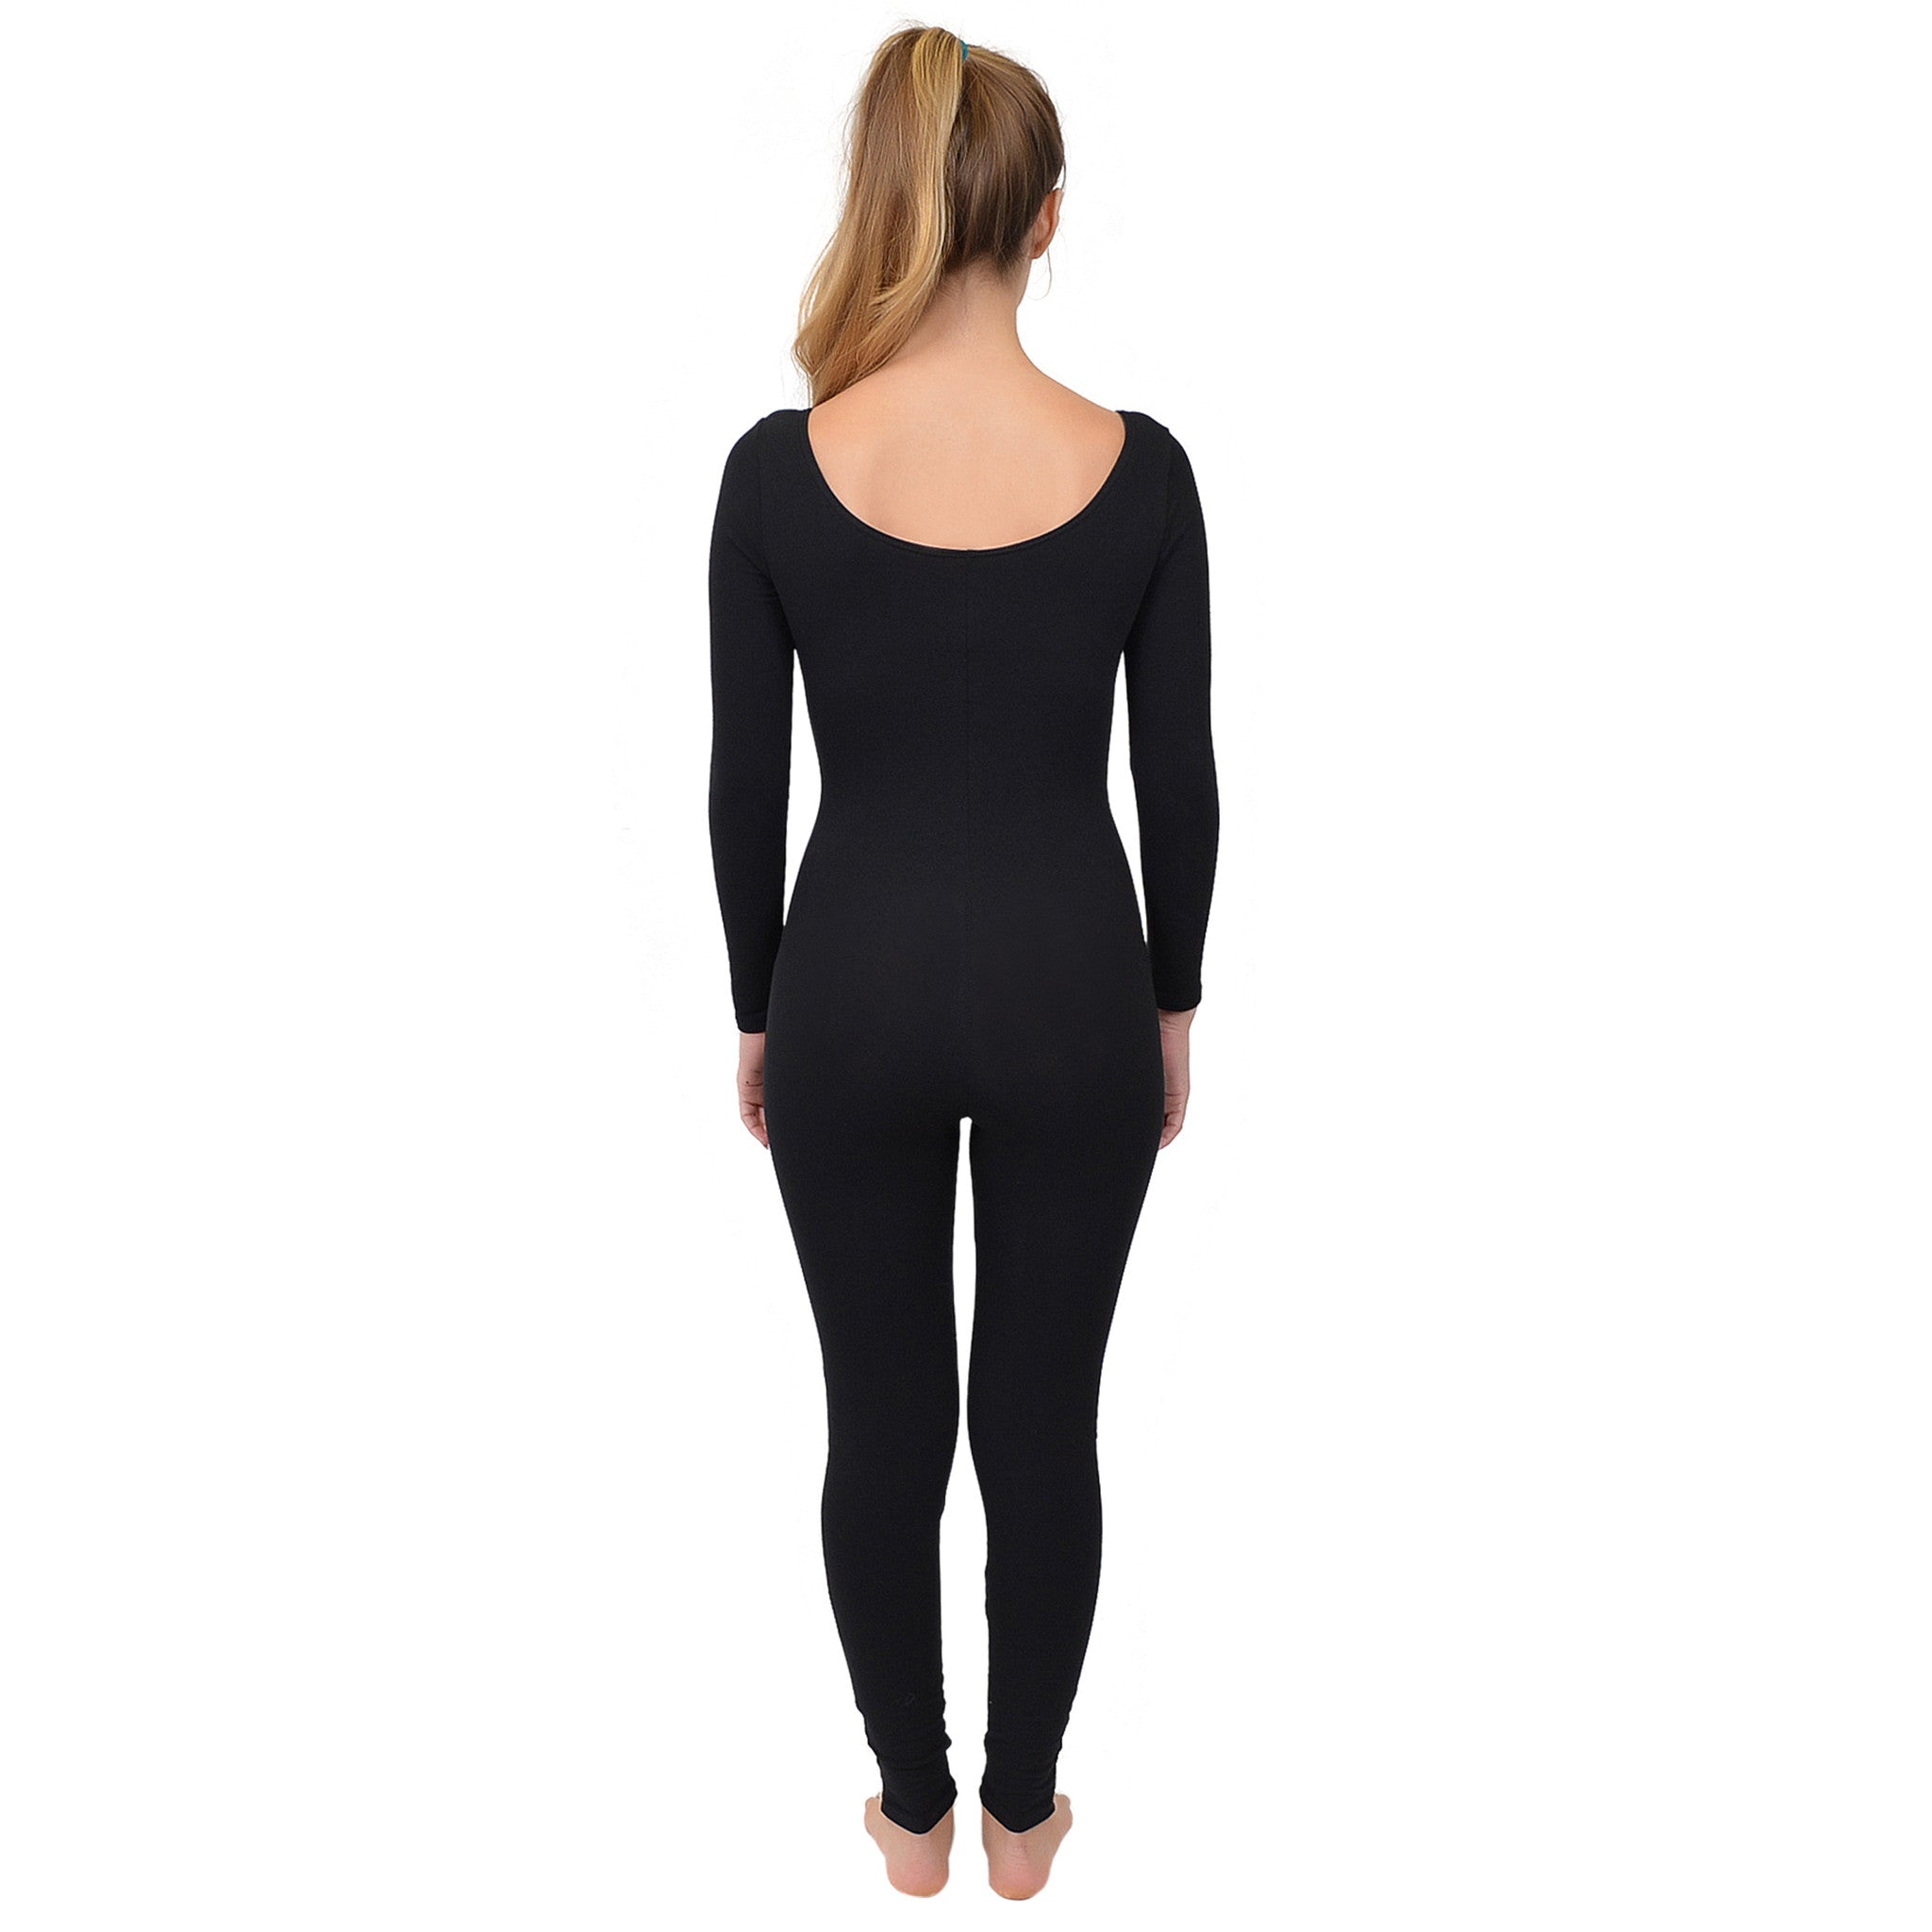 Women's Long Sleeve Scoop Neck Cotton Unitard